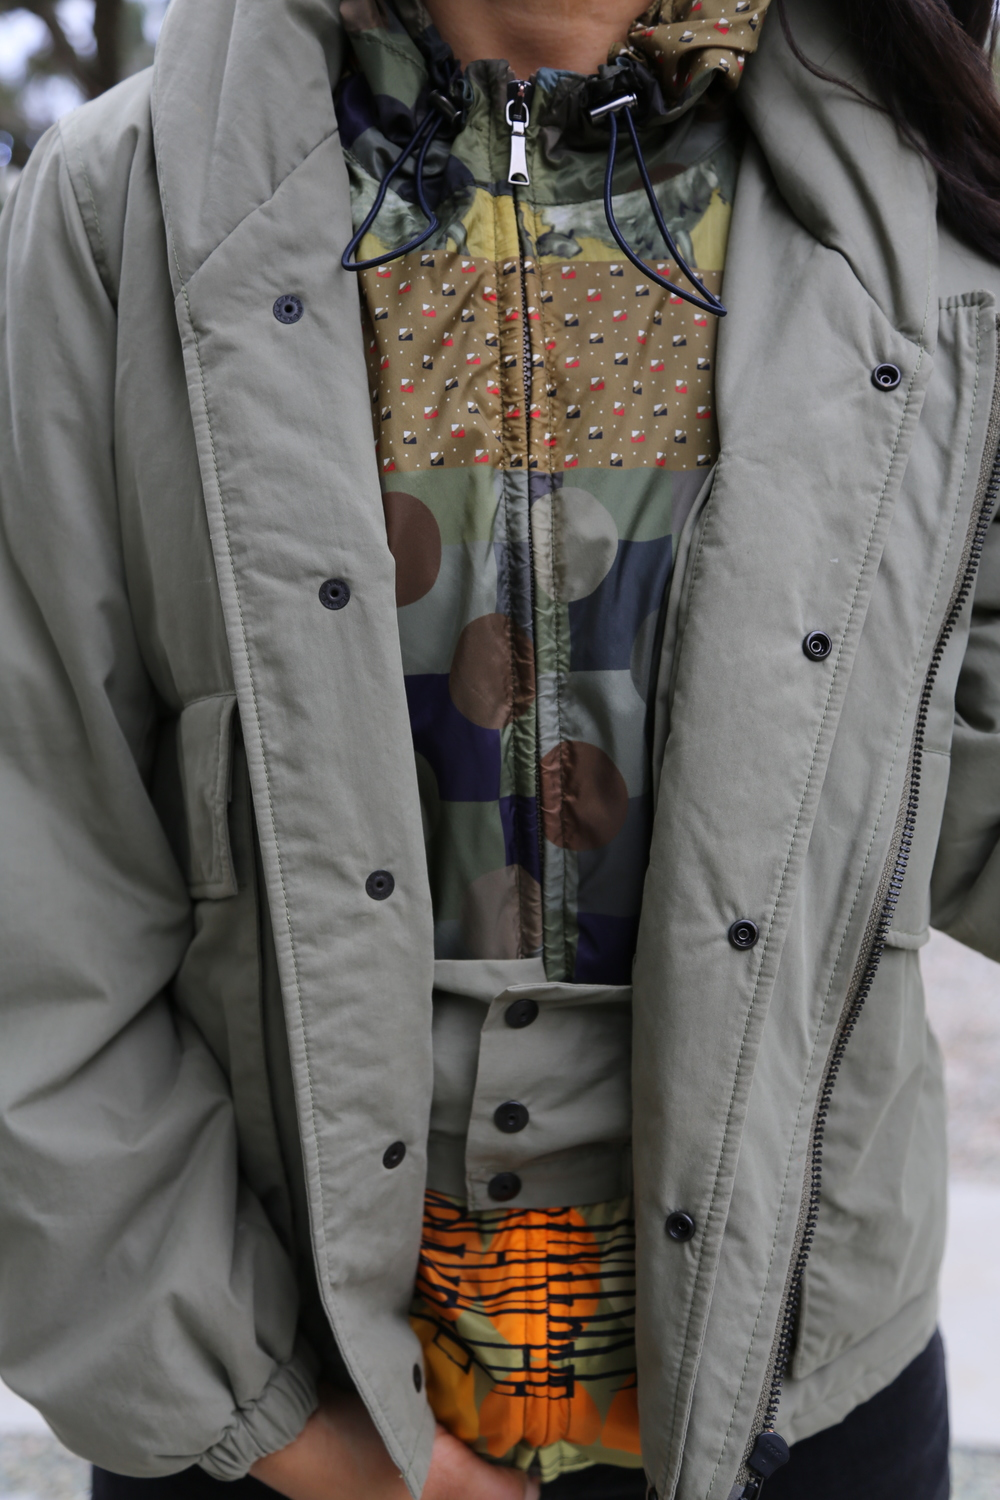 N-HOOLLYWOOD-AVIATOR-GREEN-JACKET-MASCIA-RAIN-COAT-LOS-ANGELES.JPG